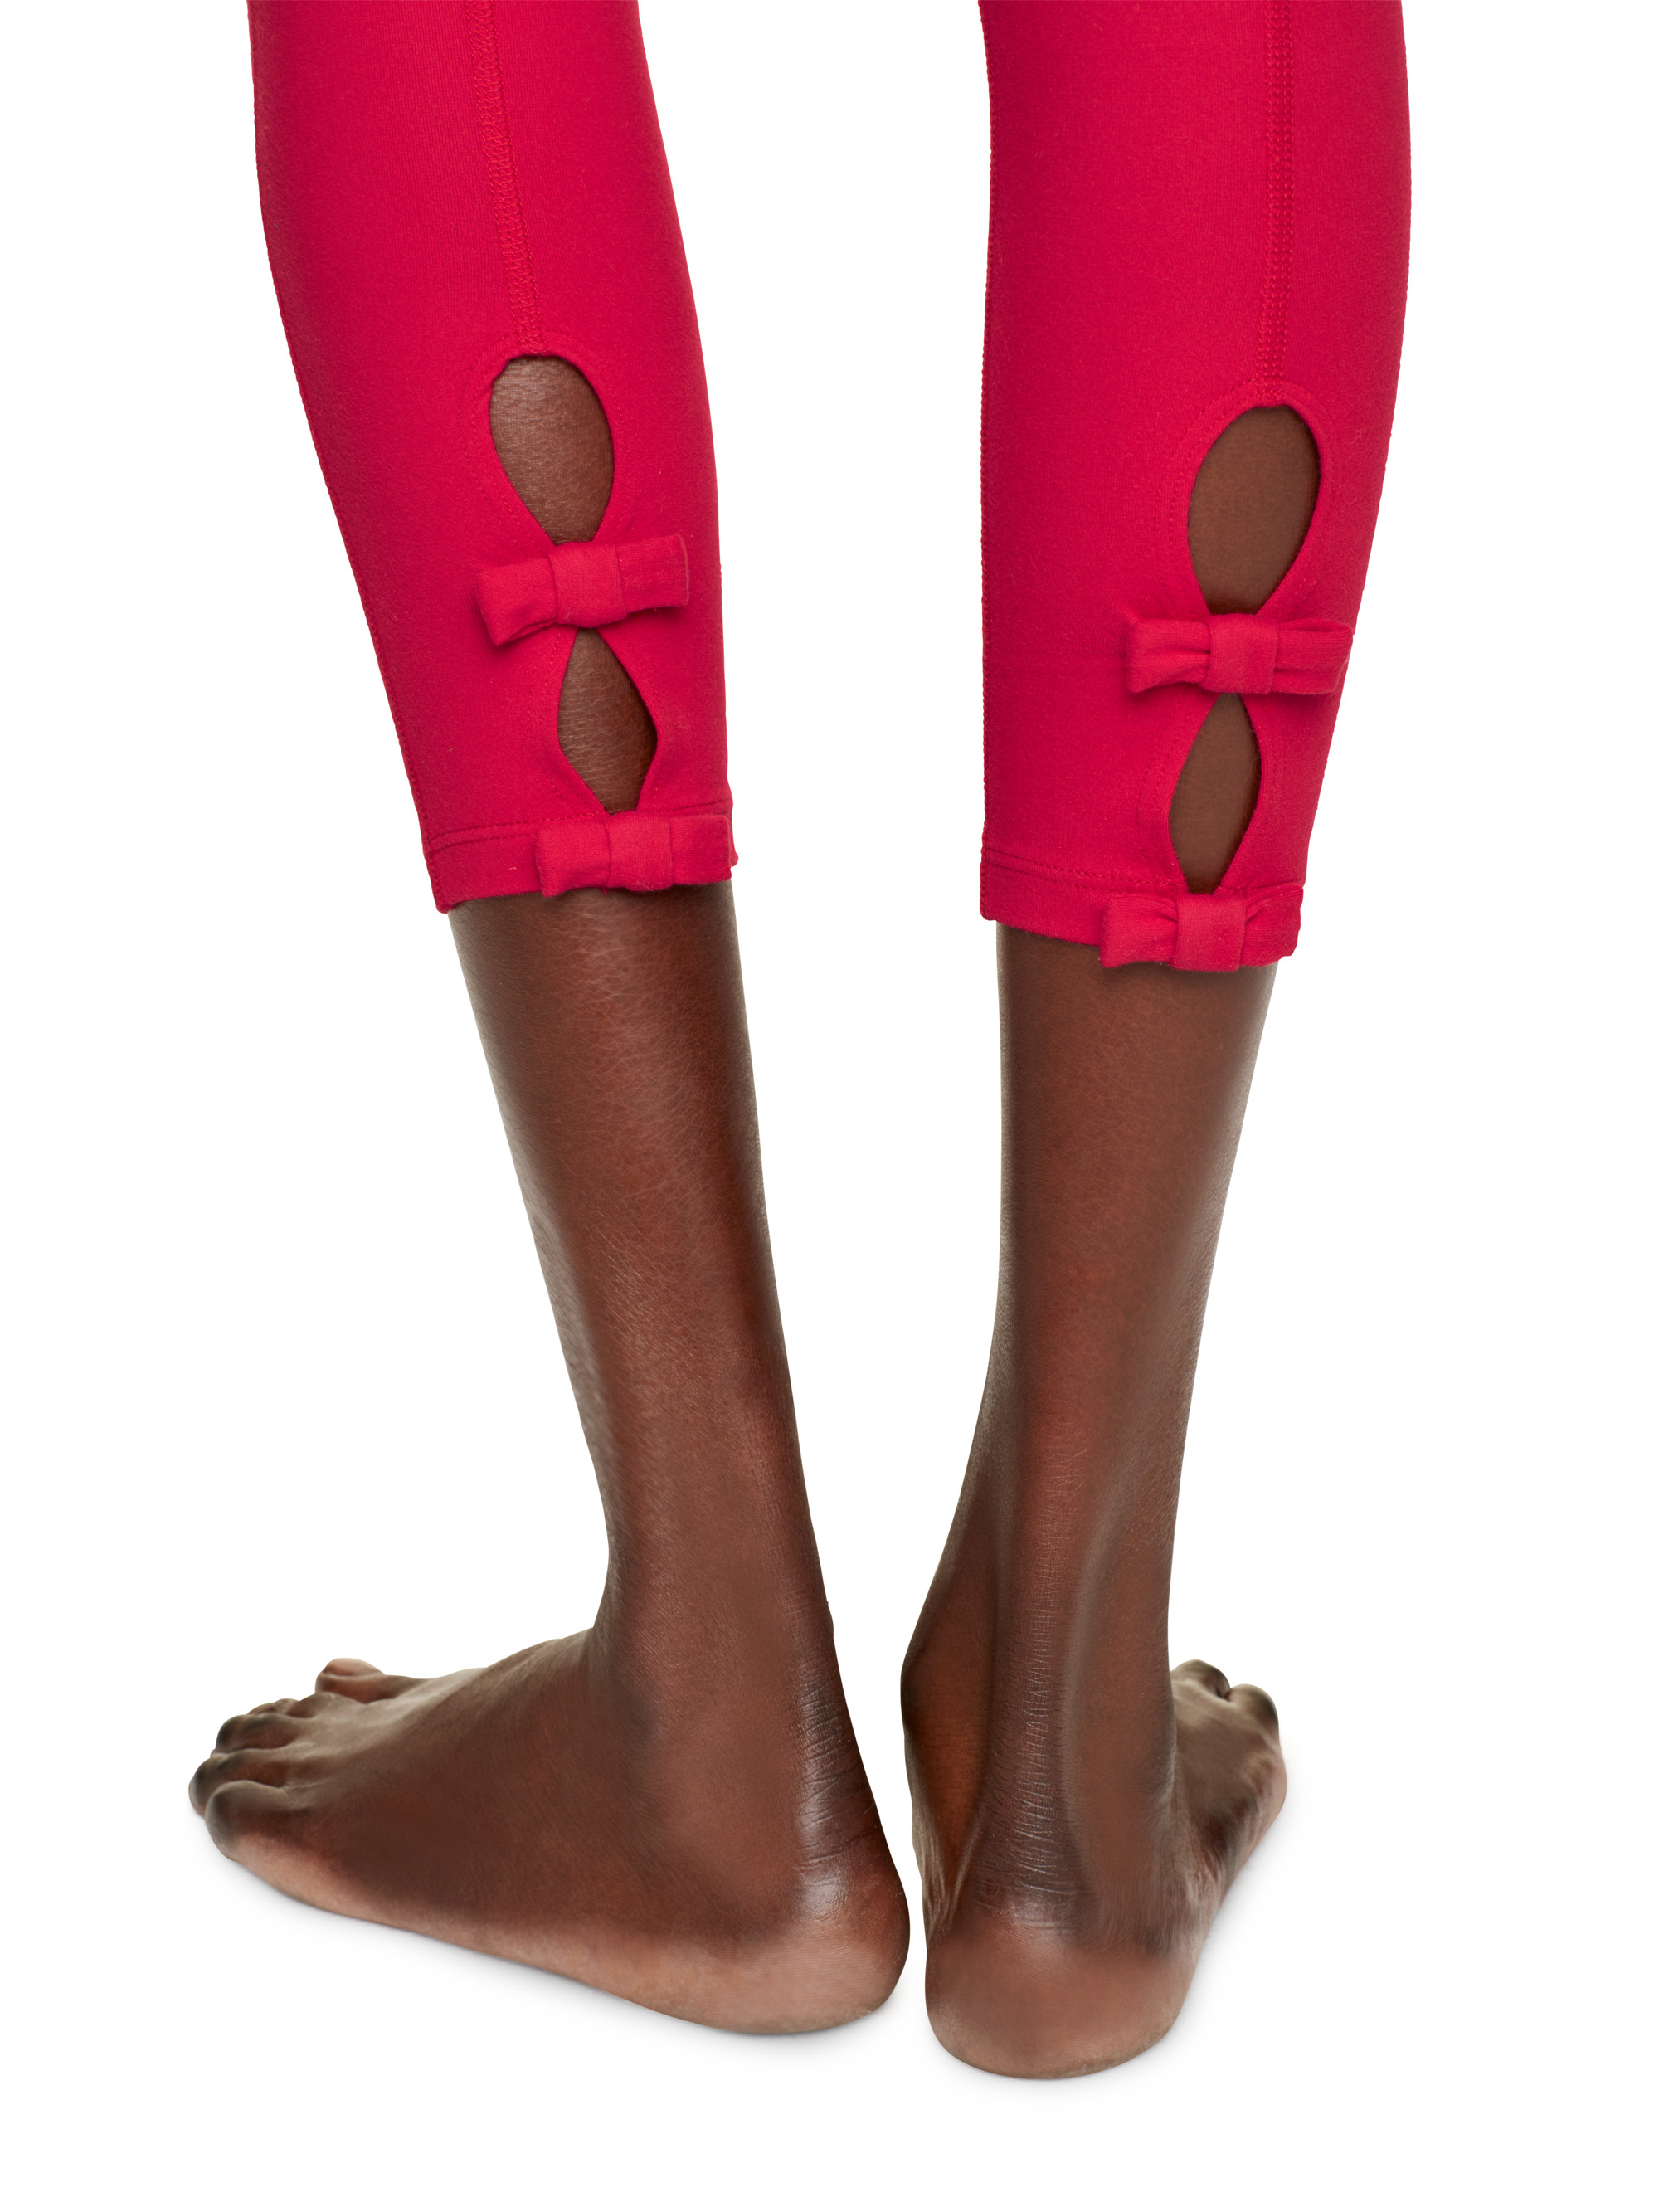 3857b6b895fc5 Kate Spade Back Bow Legging in Red - Lyst